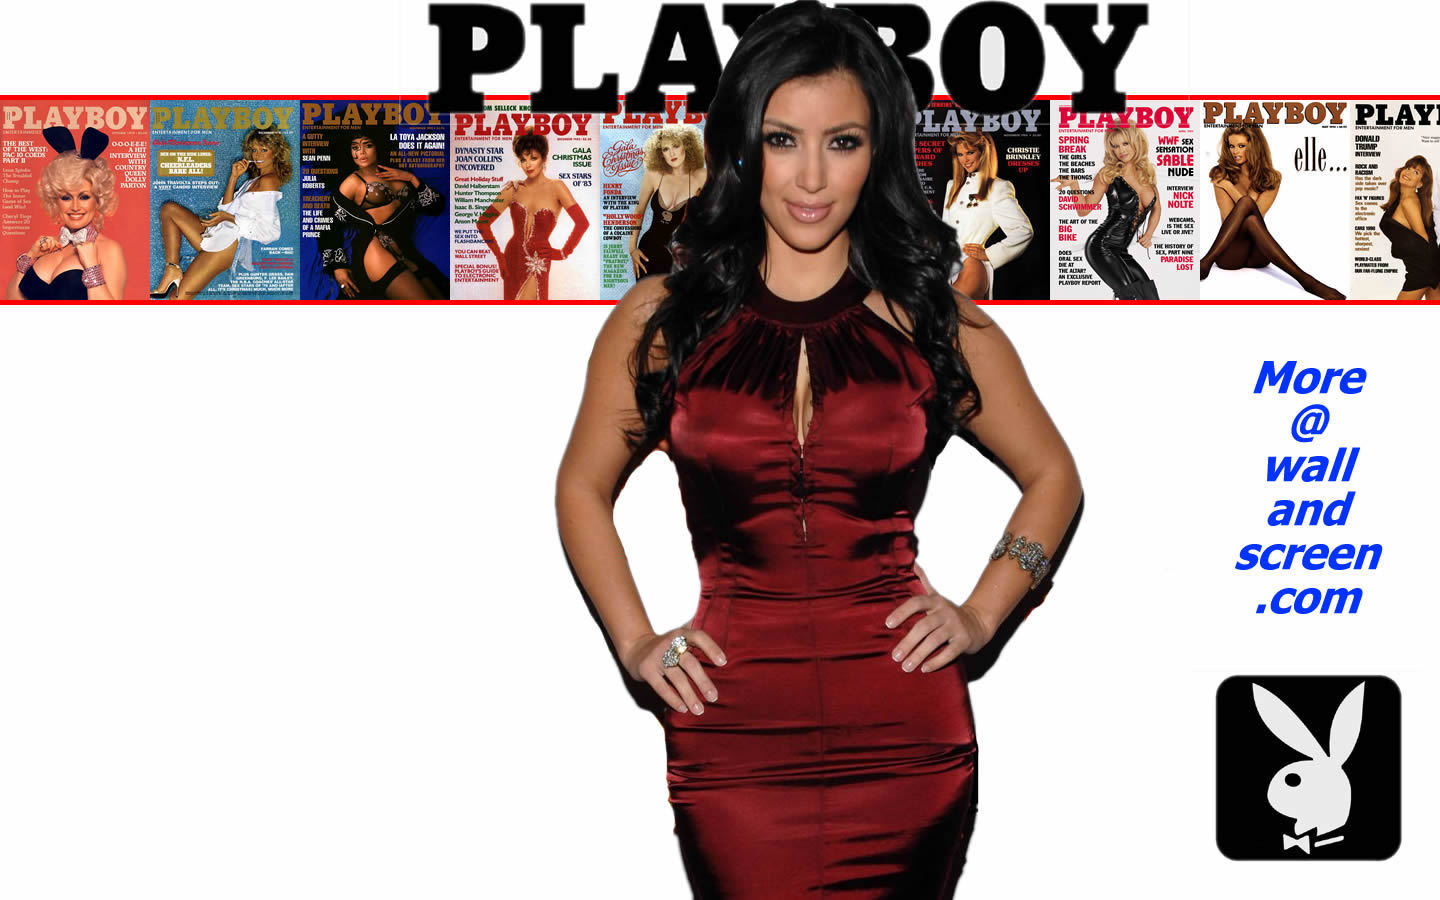 playboy Celebrity Series 06 - Kim Kardashian